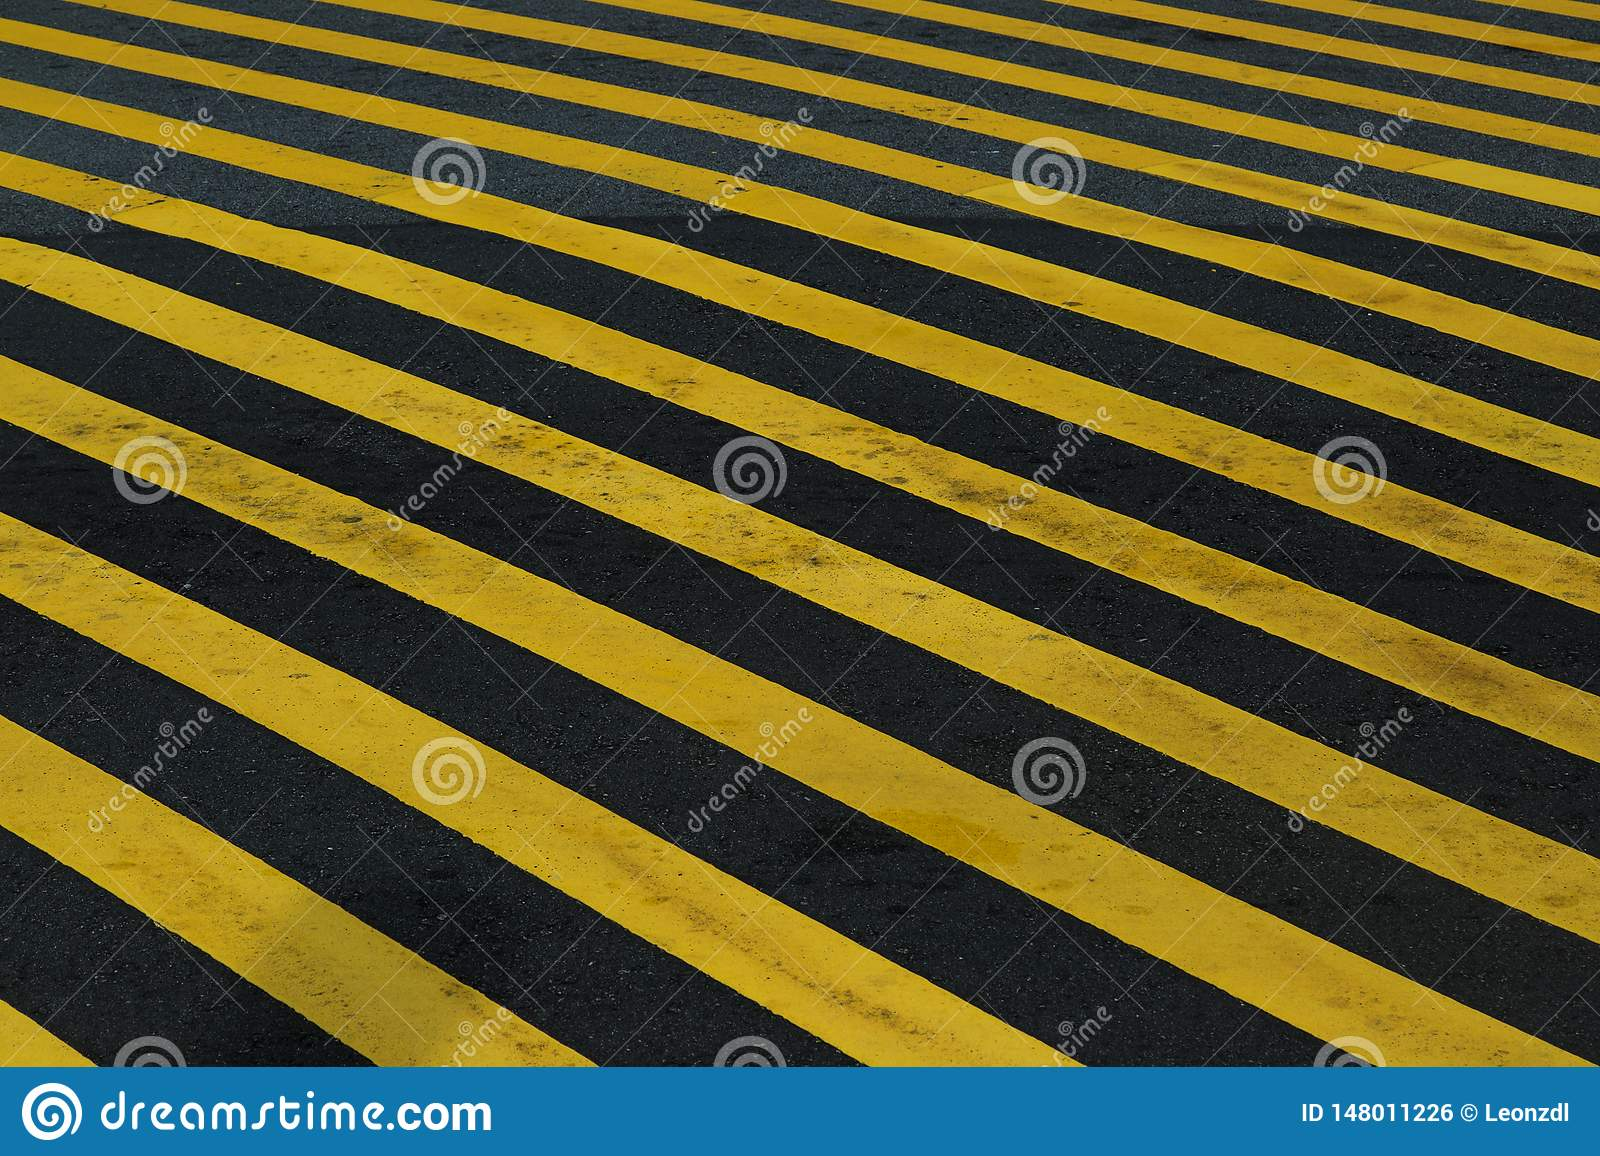 Yellow hazard stripe texture background for the floor